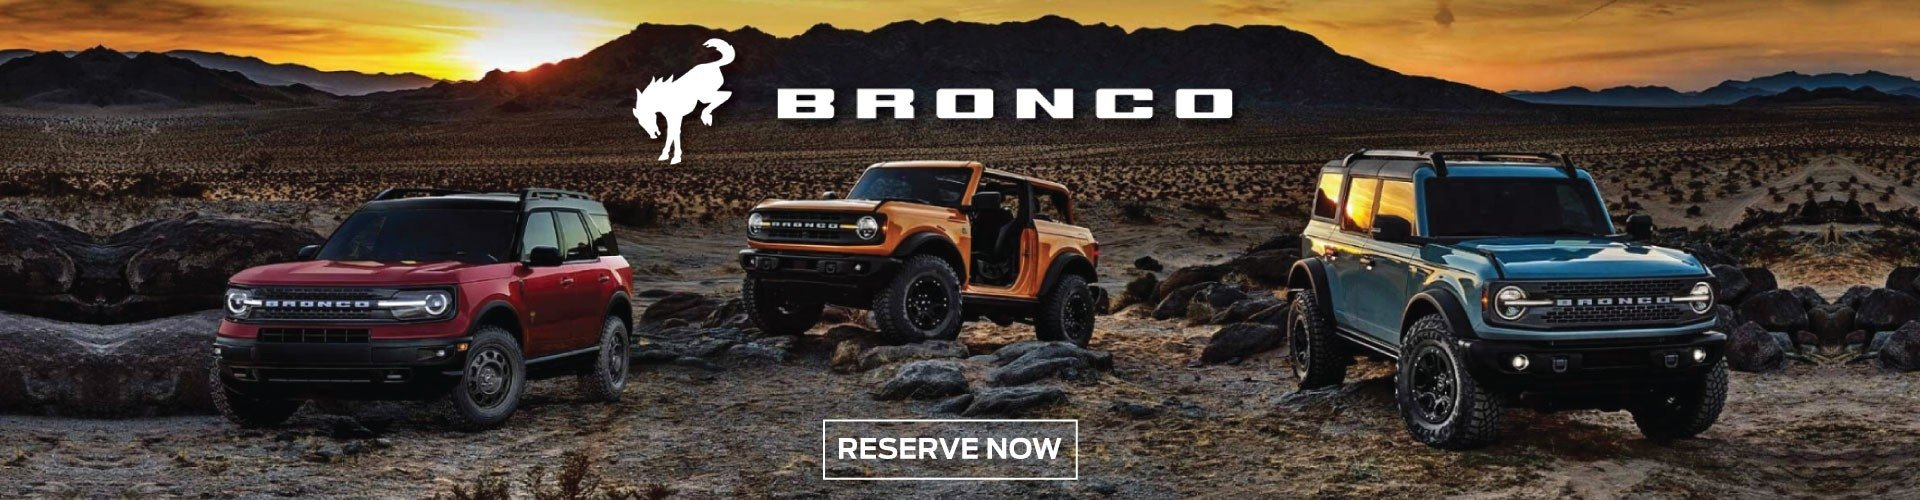 2021 Ford Bronco Reserve Now